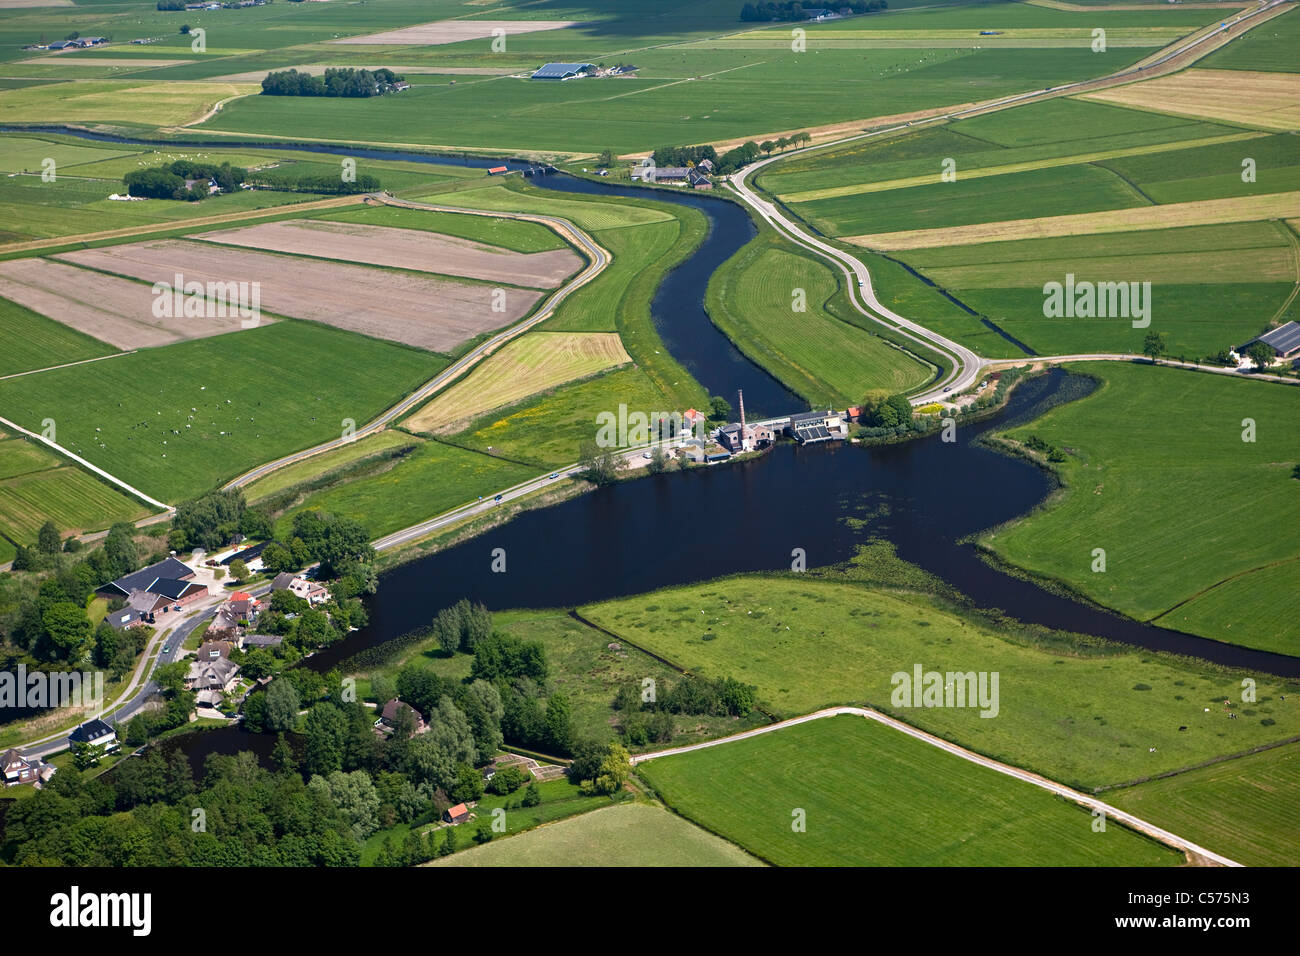 The Netherlands, Genemuiden, Monumental steam driven pumping-station, called Mastenbroek. Constructed 1856. Aerial. - Stock Image